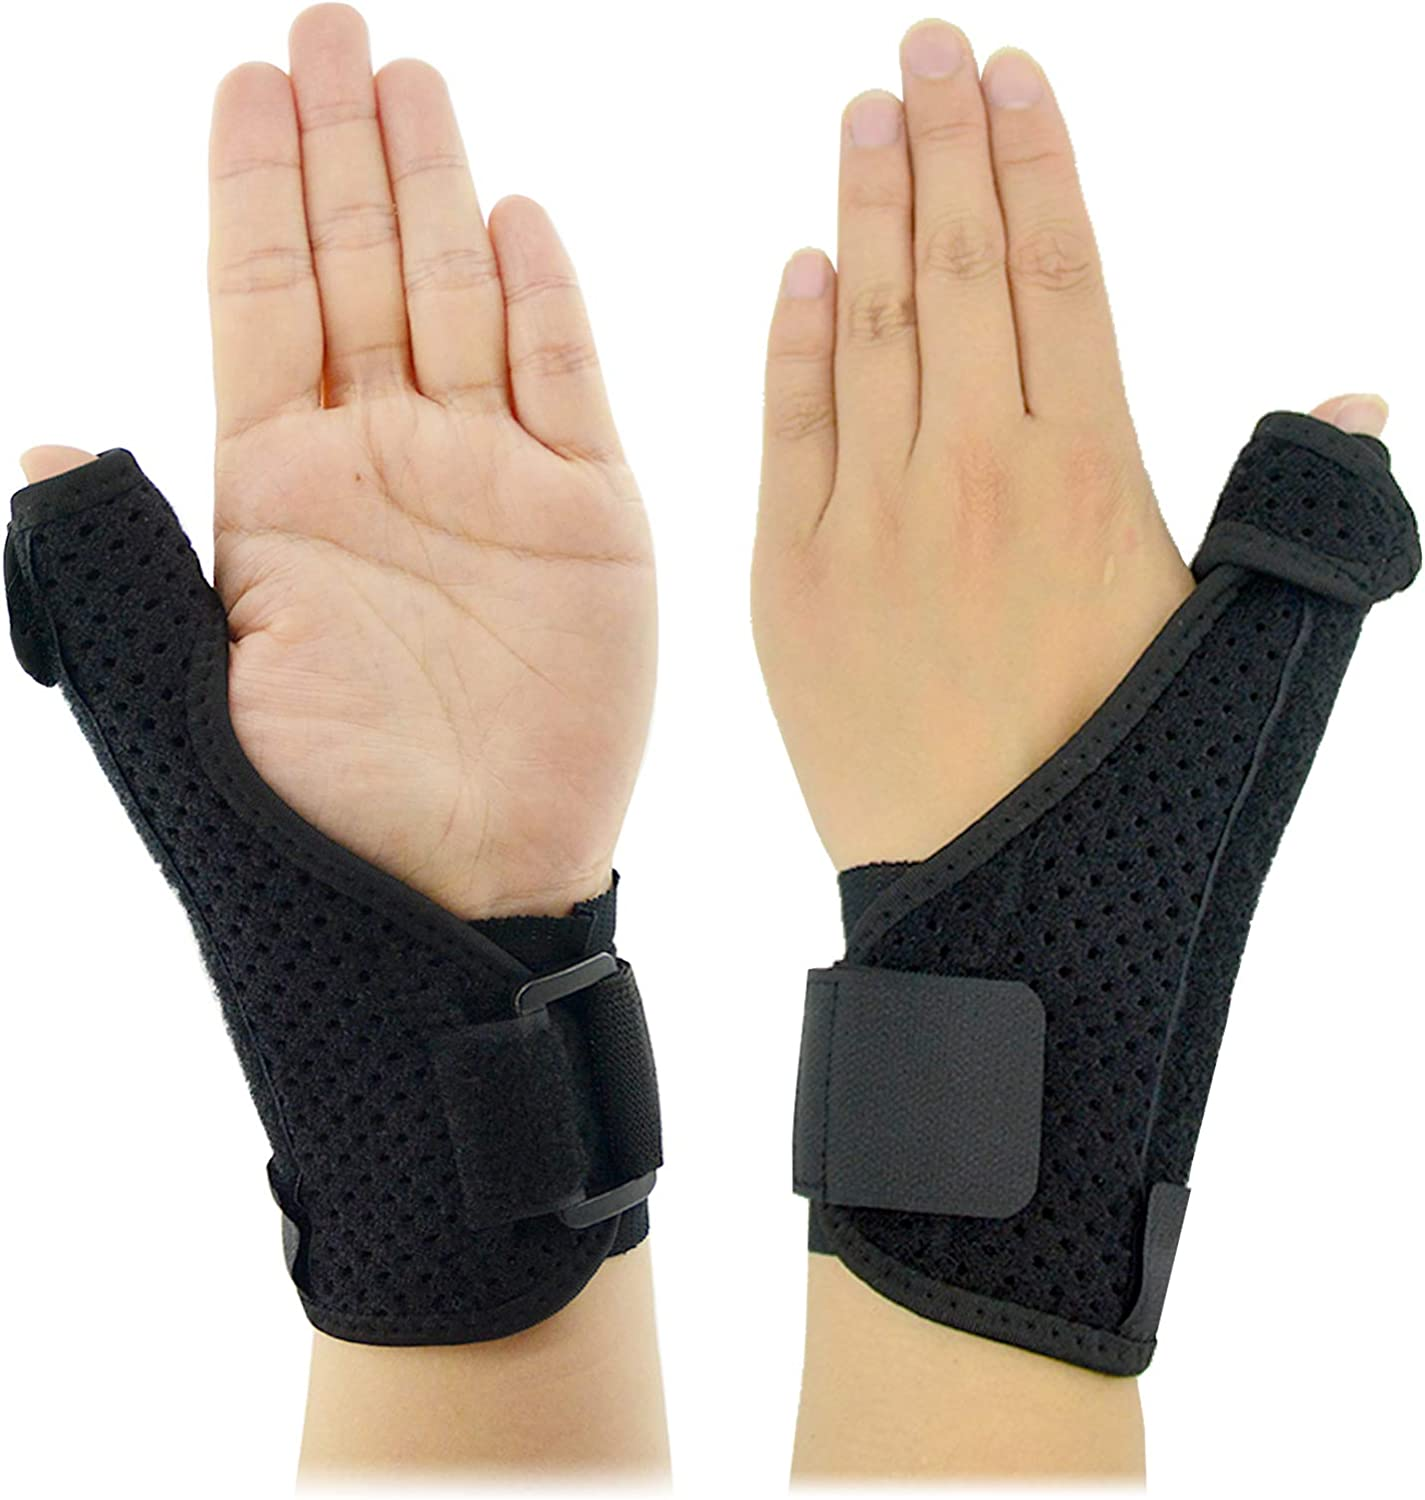 Thumb Splint Thumb Brace ?2021 Upgraded? Reversible Wrist Stabilizer Splint for BlackBerry Thumb Trigger Finger Pain Relief Arthritis Tendonitis Sprained and Carpal Tunnel Supporting Breathable 1PCS